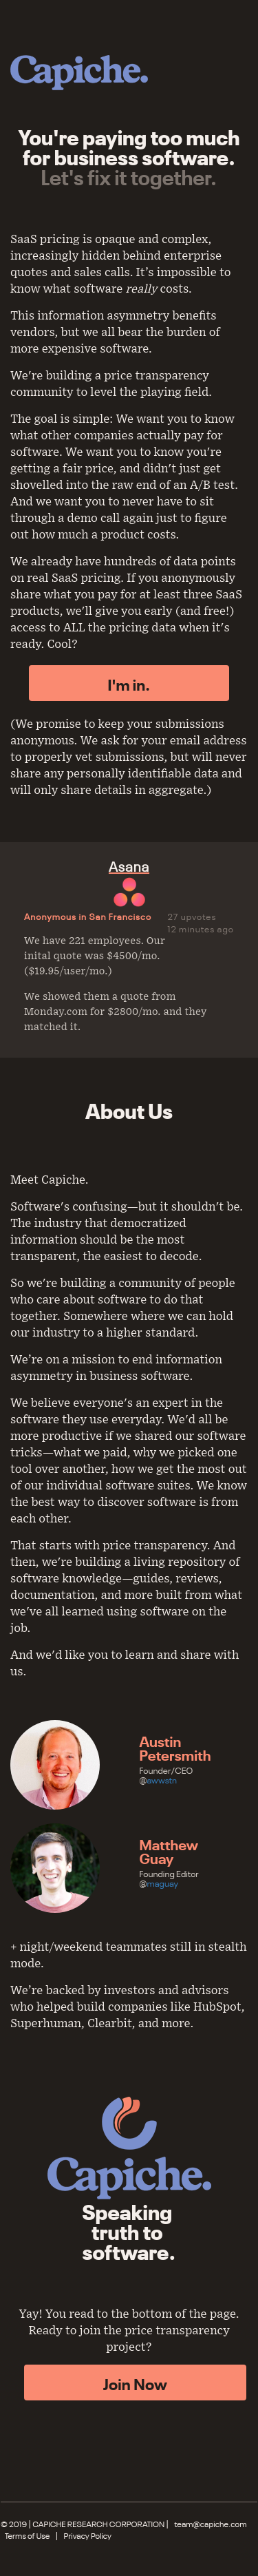 Example of Design for Computers & Electronics, Software, Business & Productivity Software, Mobile Landing Page by capiche.com | Mobile Landing Page Design